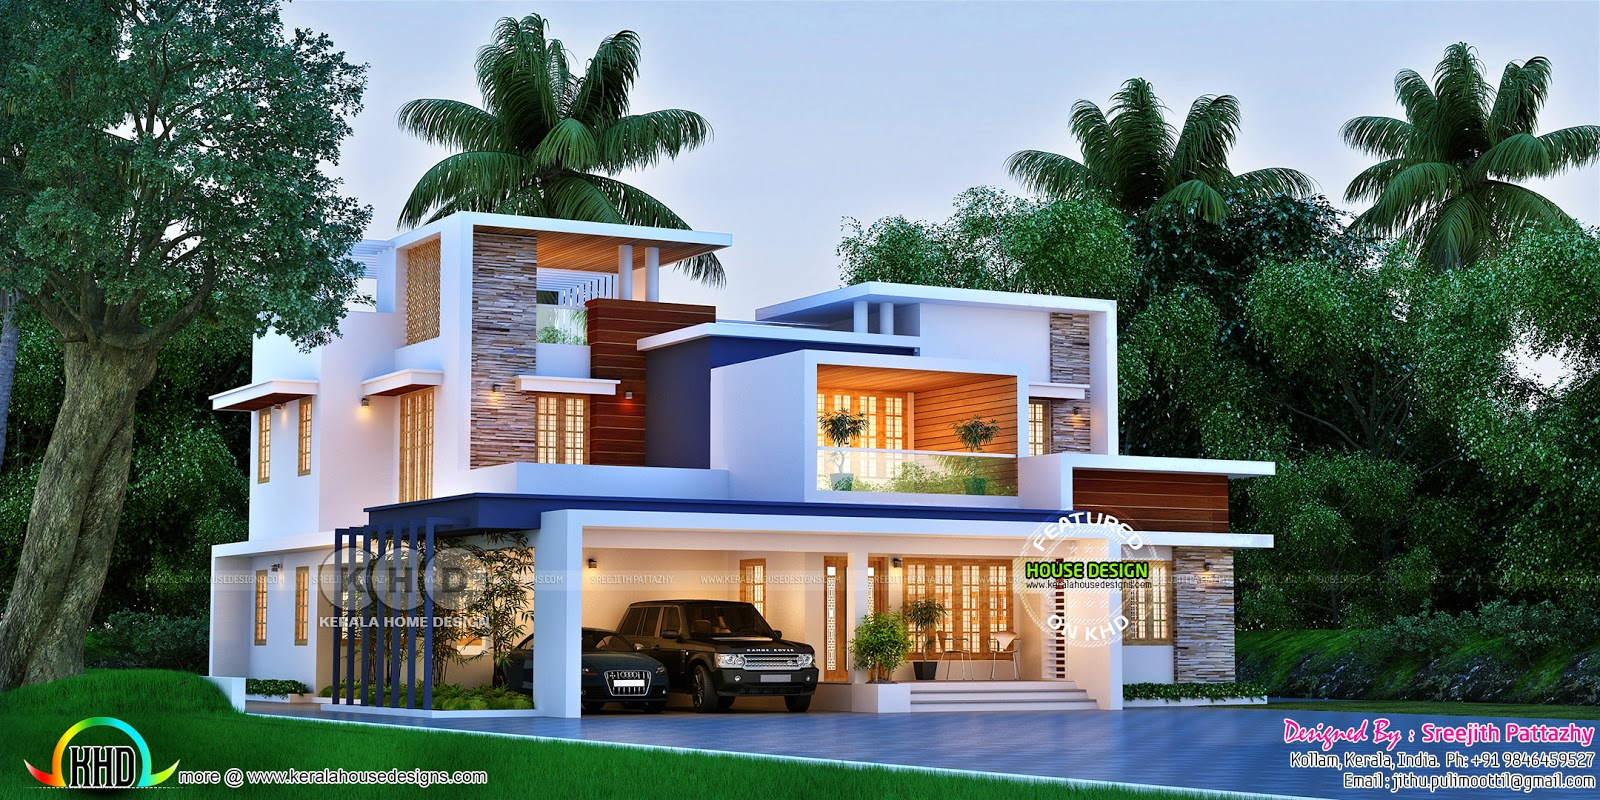 Superb Box Model Contemporary House 3420 Sq Ft Kerala